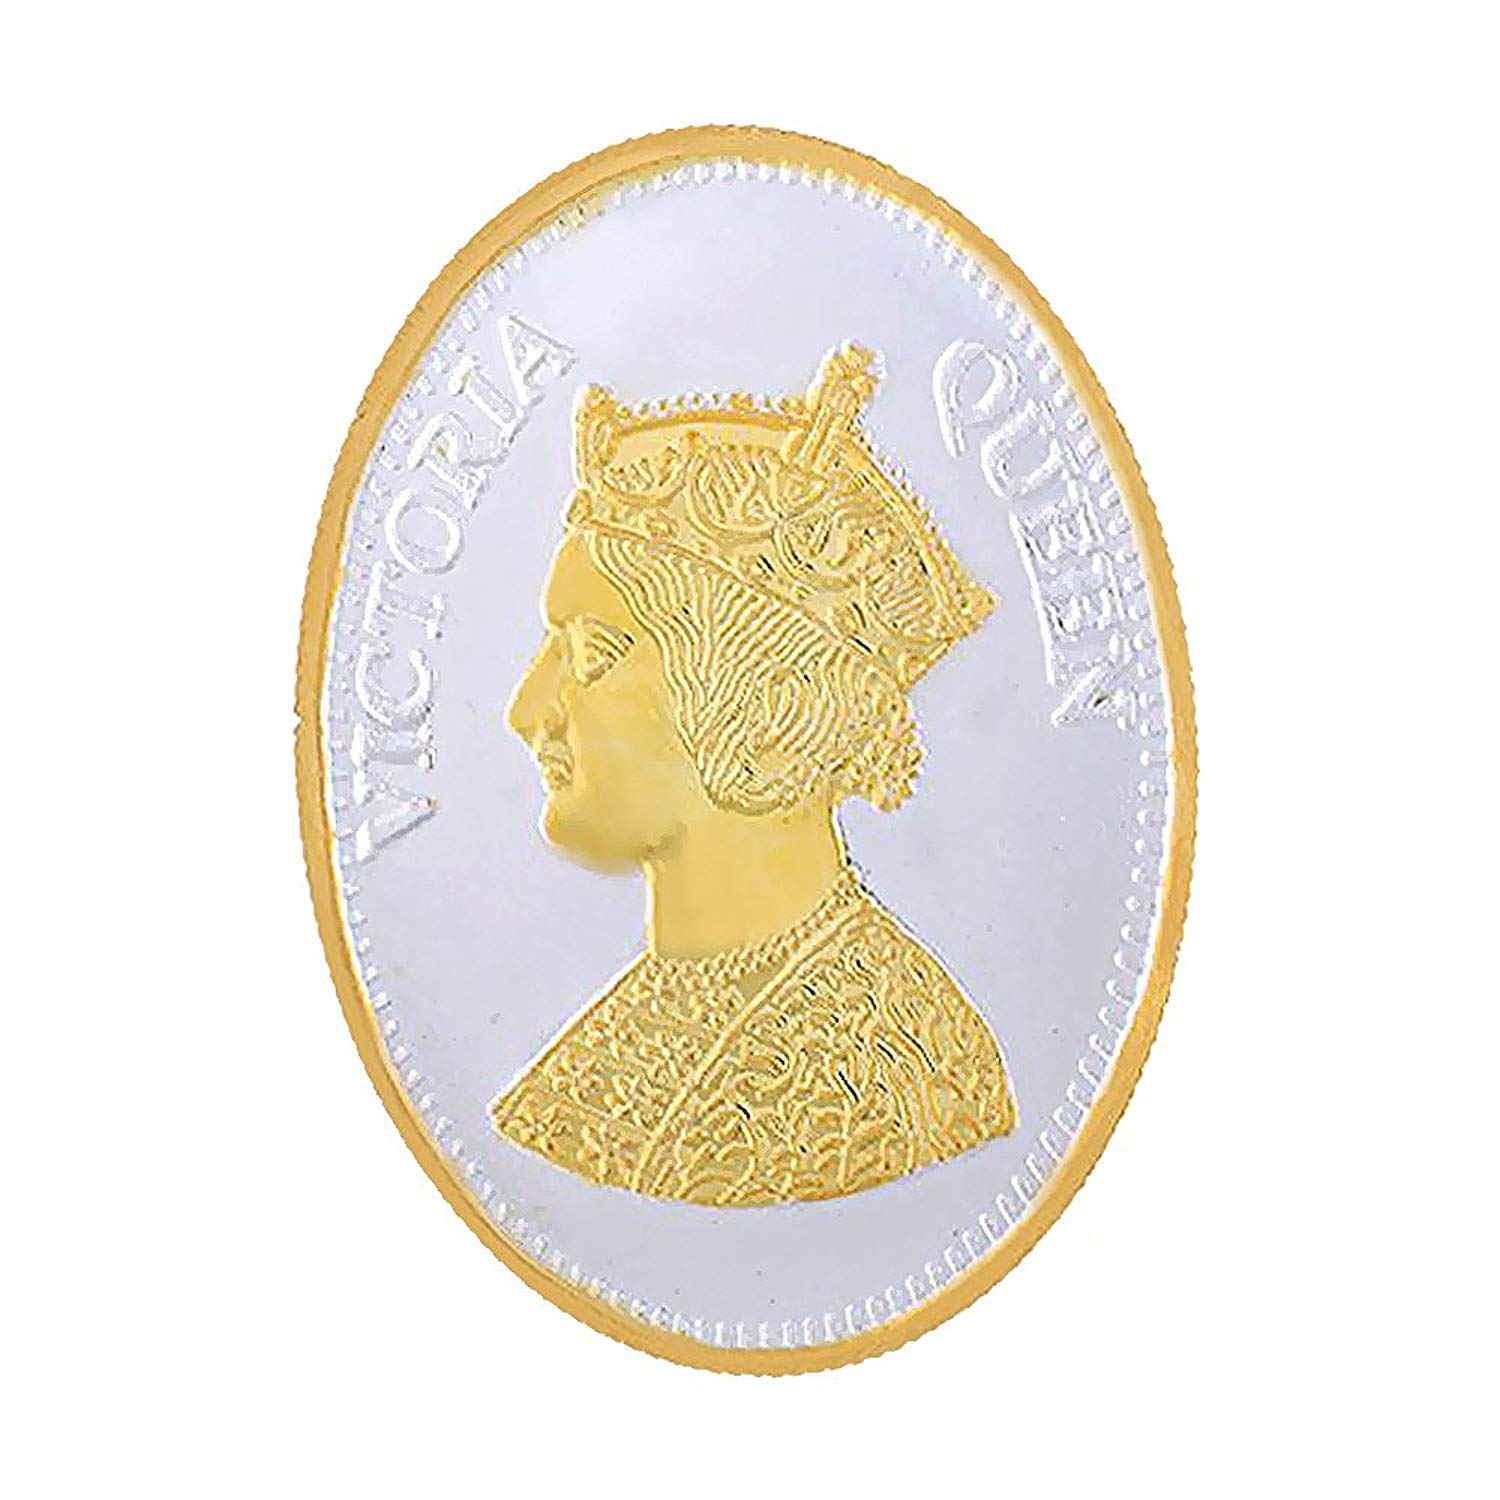 Buy LGW Queen Victoria Oval Shape Silver Coin 10 Gram 999 purity ...